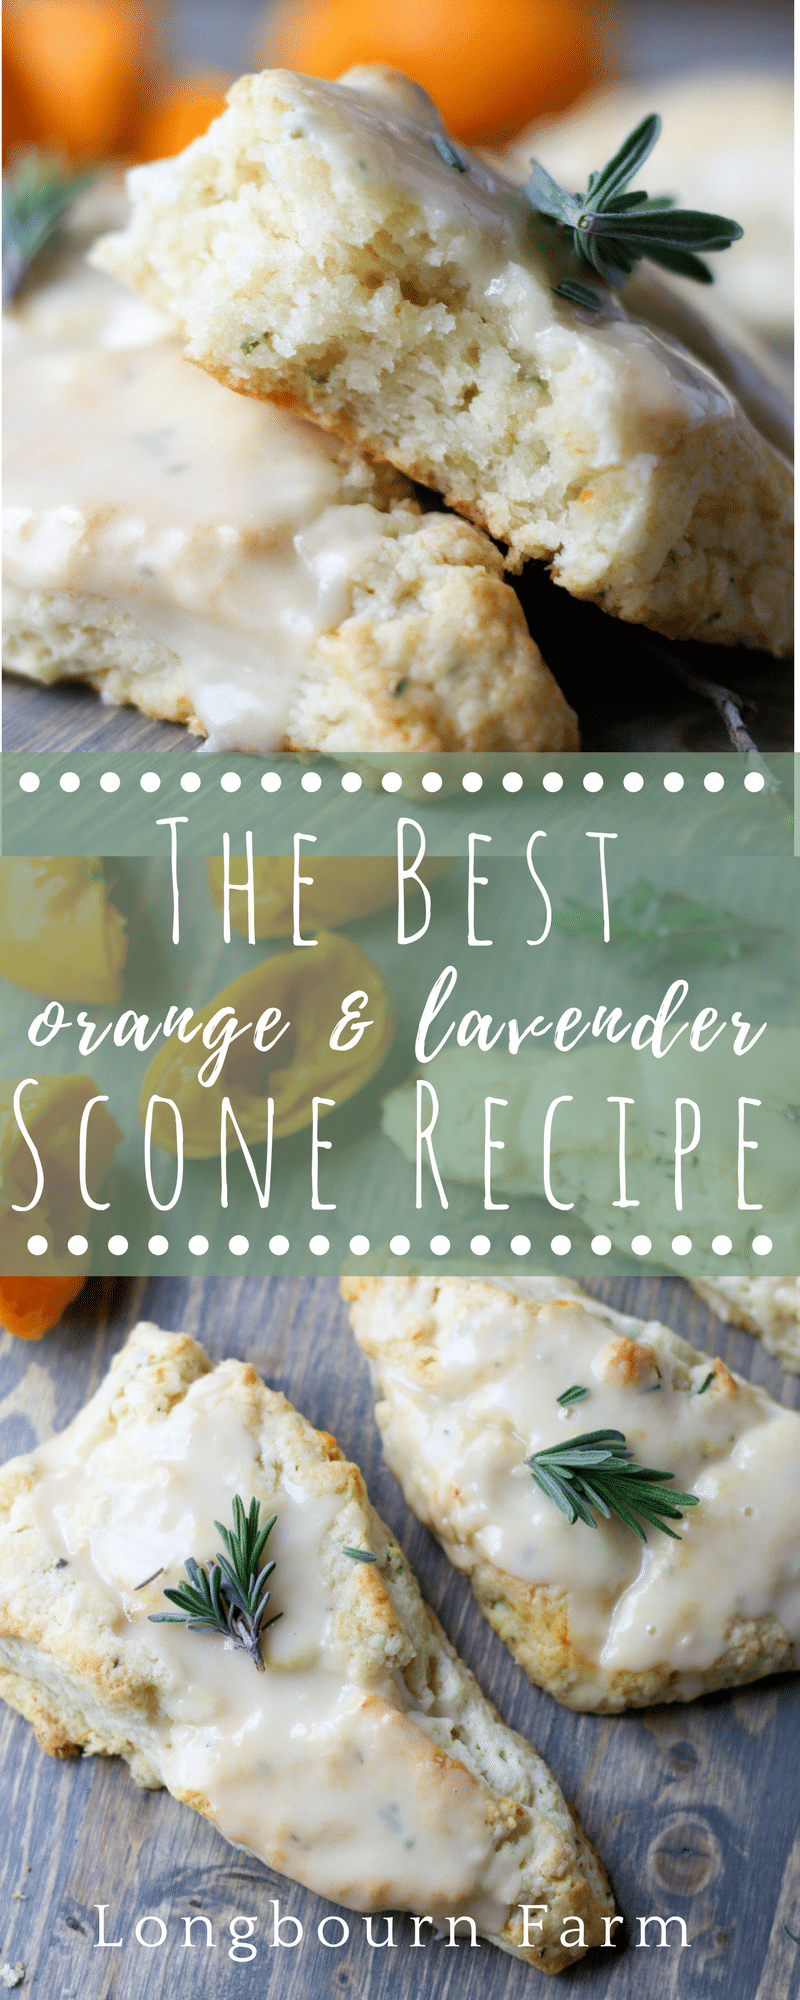 This is the best easy scone recipe, fluffy, buttery, ultra soft scones that turn out every time. Turn up the flavor by adding lavender and orange! via @longbournfarm